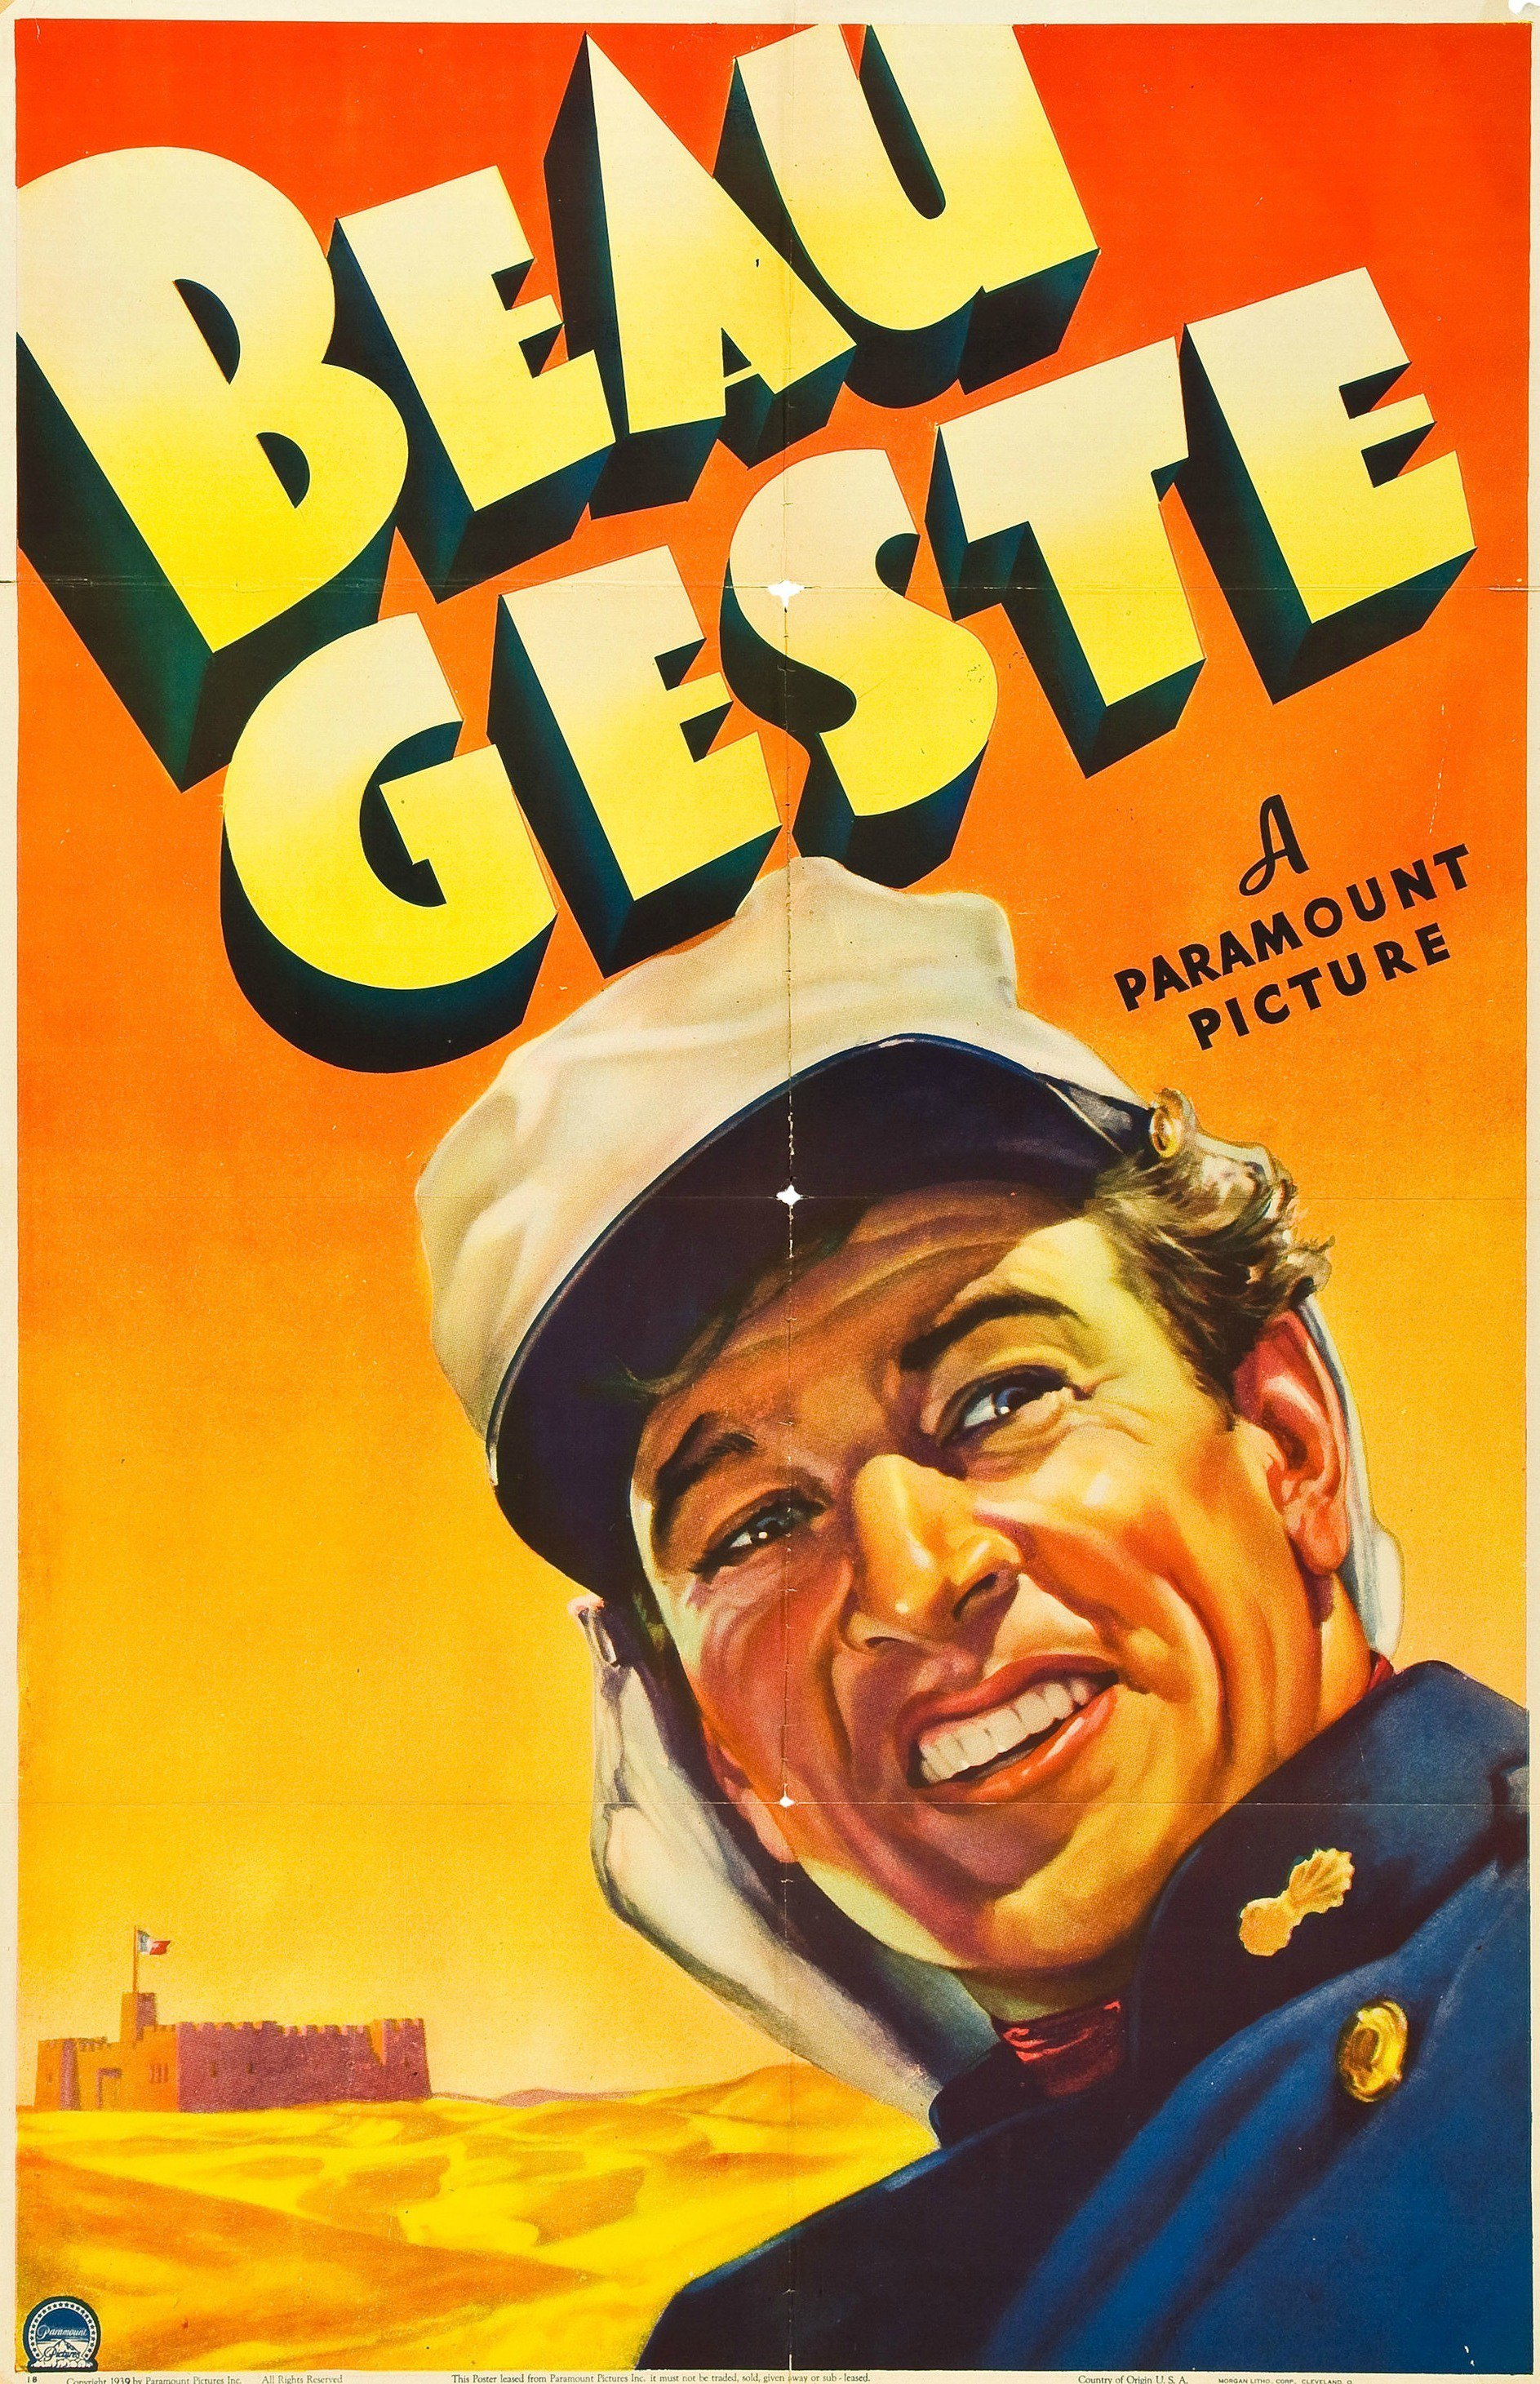 - Academy Award winners Gary Cooper and Ray Milland star along with Robert Preston in the epic adventure Beau Geste. When three brothers join the Foreign Legion to escape a troubled past, they find themselves trapped under the command of a sadistic sergeant deep in the scorching Sahara. Now the brothers must fight for their lives as they plot mutiny against tyranny and defend a desert fortress against a brutal enemy. Nominated for 2 Academy Awards, Beau Geste has been universally acclaimed by generations of critics and audiences alike as a true motion picture classic.Beau Geste (1939) Directed by William A. Wellman. 112mins.Gary Cooper - Beau GesteRay Milland - John GesteRobert Preston - Digby GesteBrian Donlevy - Sergeant MarkoffAlso starring Susan Hayward, J. Carrol Naish, Albert Dekker and Broderick Crawford.Based on the classic adventure novel by P.C. Wren, first published in 1924.One of Coop's most famous films.Oscar nominations for Best Supporting Actor (Brian Donlevy) and Best Art Direction.Tagline - AGAIN...the three Gestes face a thousand dangers of the Sahara for each other...and love!